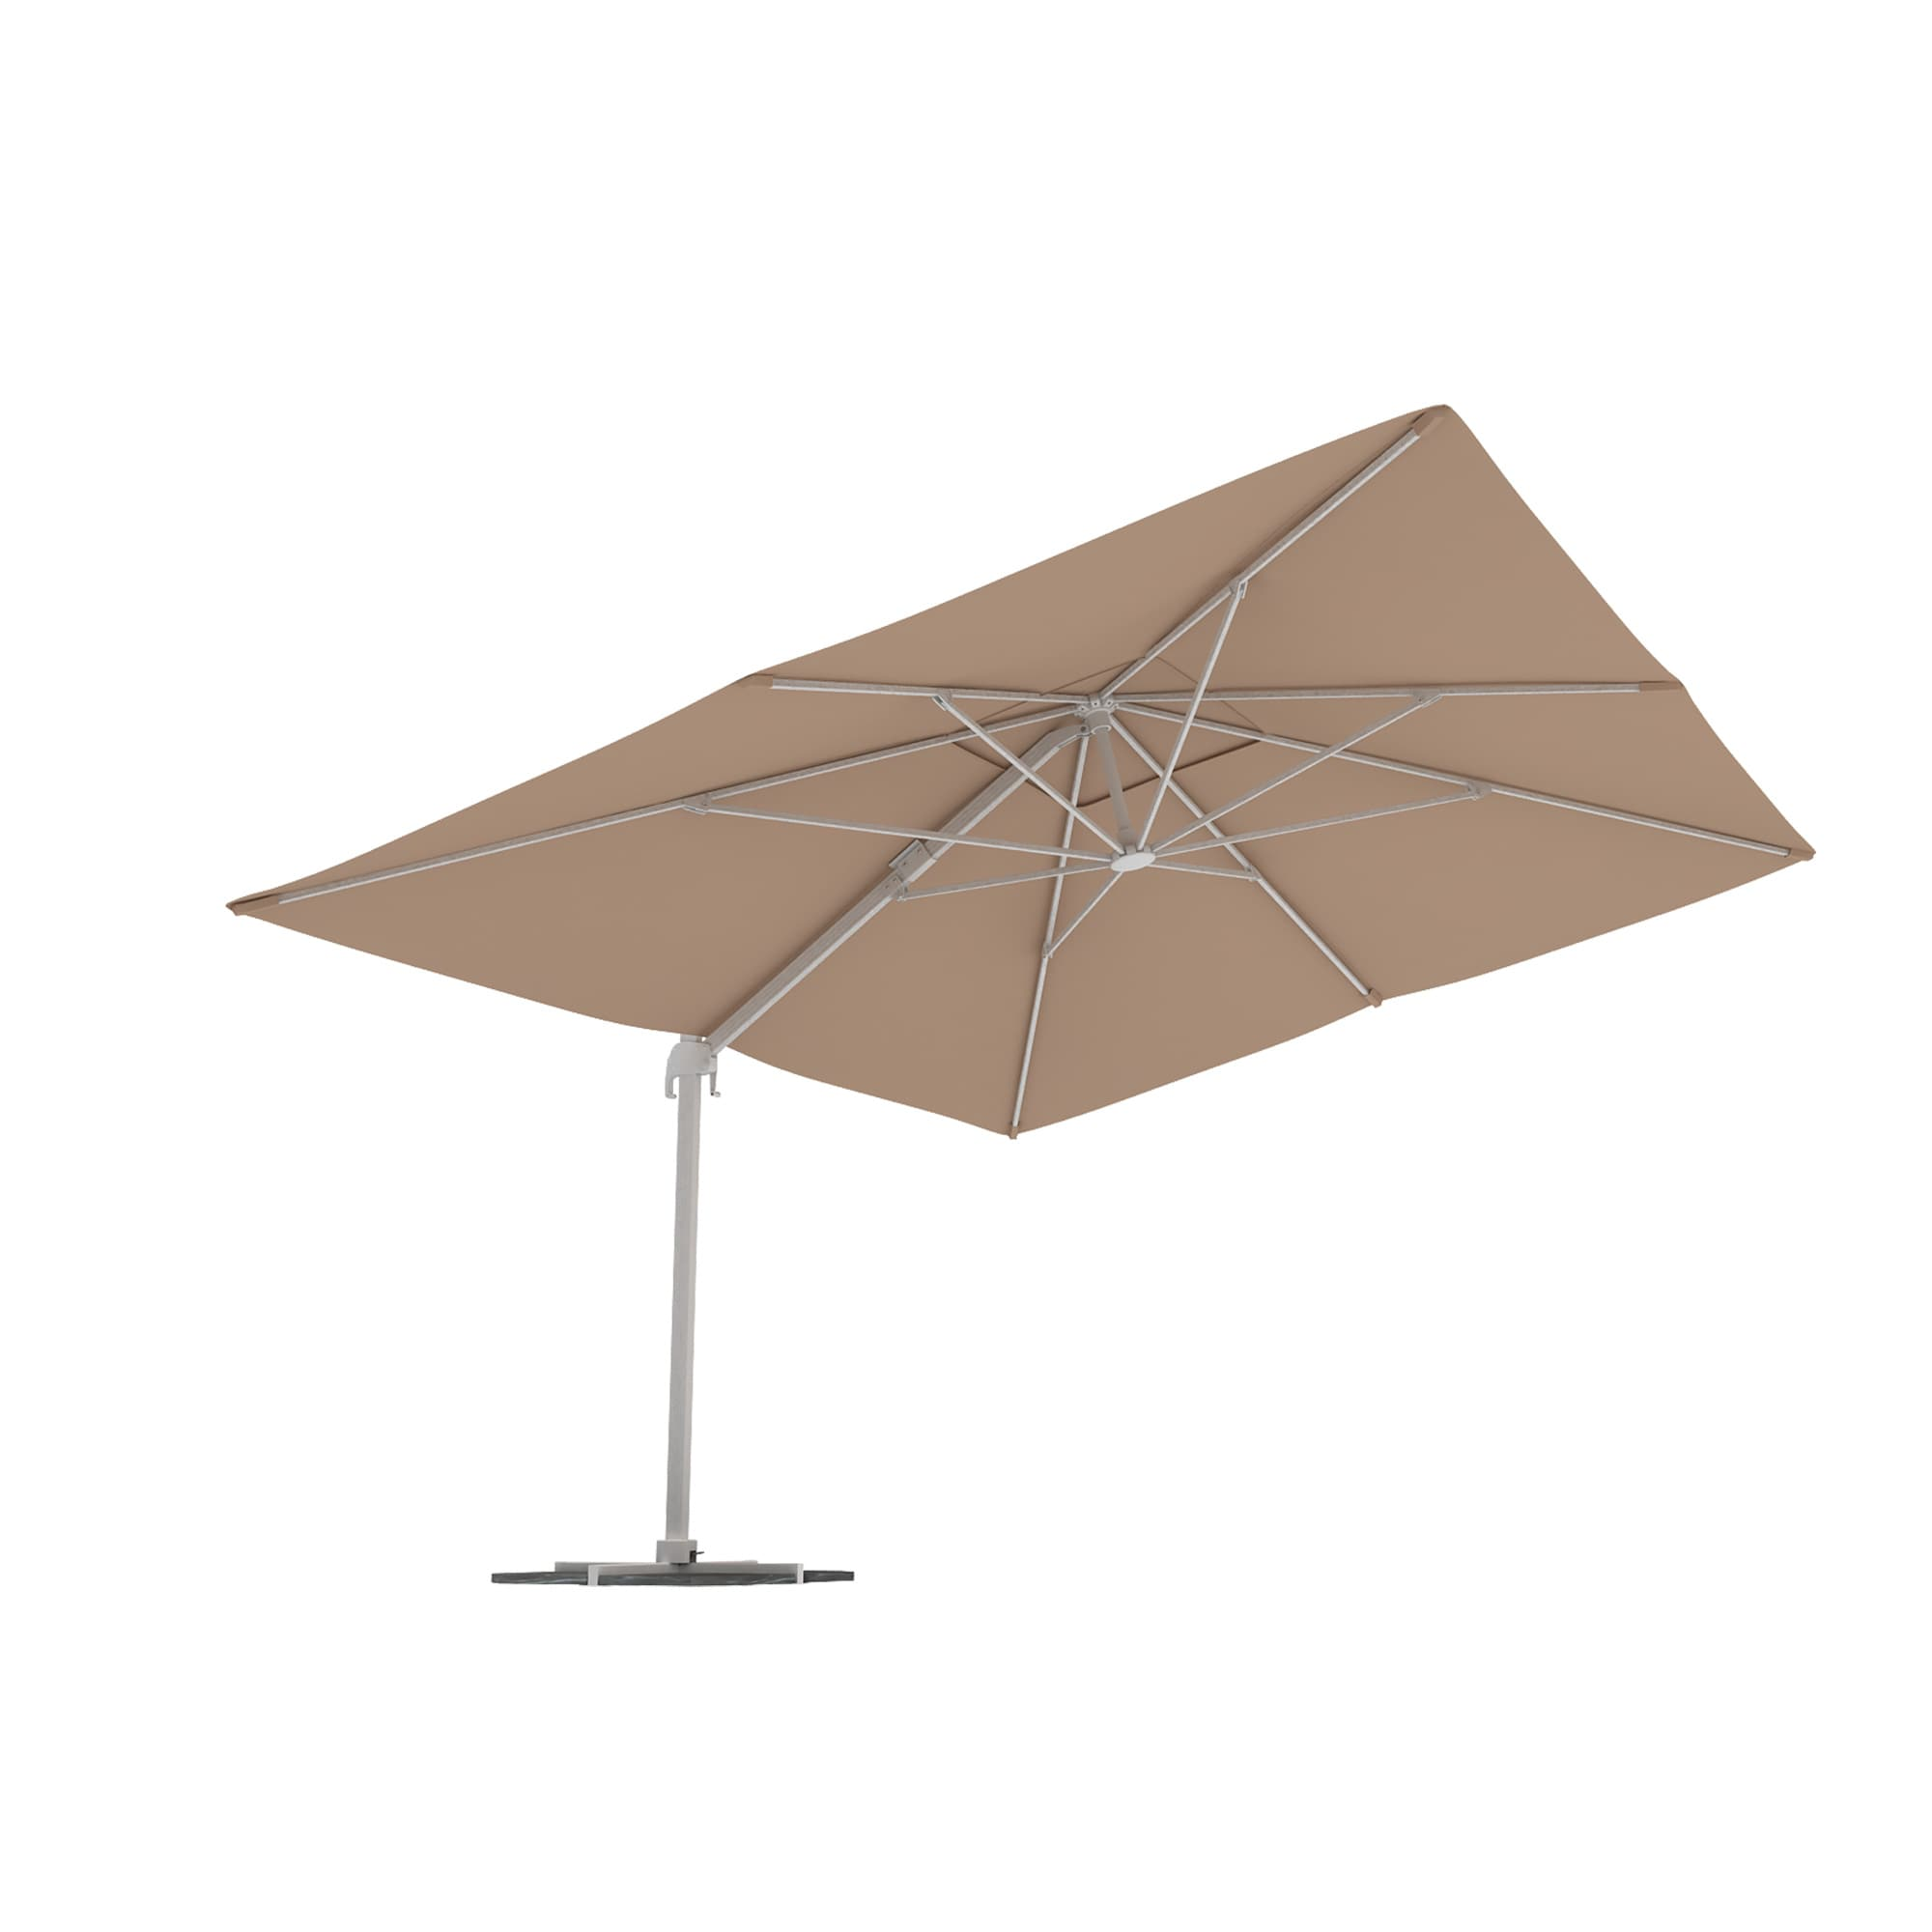 parasol d port paramondo parapenda m t excentr rond 3 5m rectangulaire 4x3m ebay. Black Bedroom Furniture Sets. Home Design Ideas